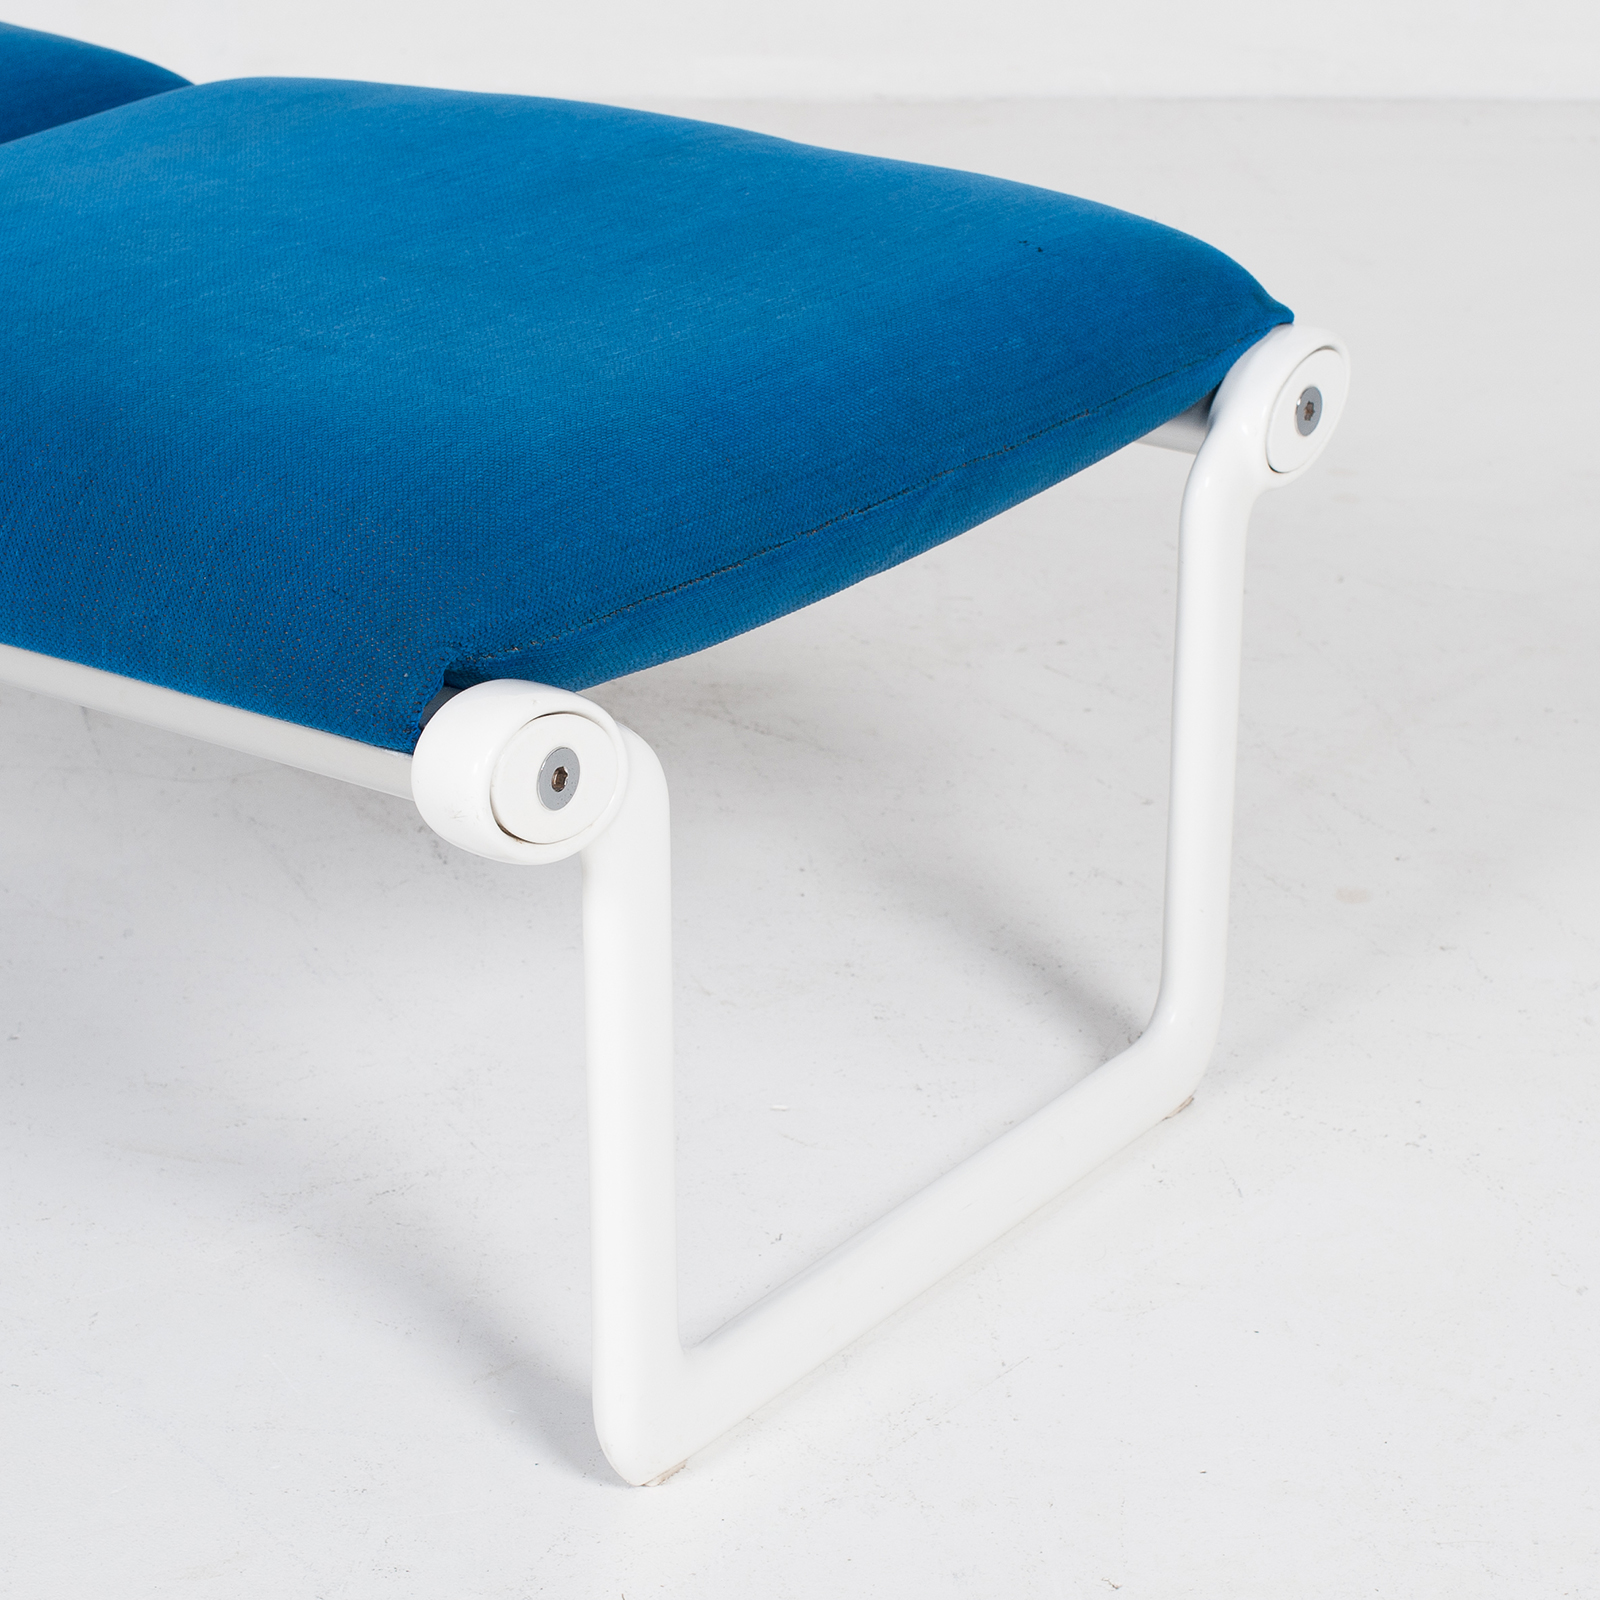 Bench By Bruce Hannah And Andrew Morrison For Knoll With Blue Upholstery, 1960s, United States 4